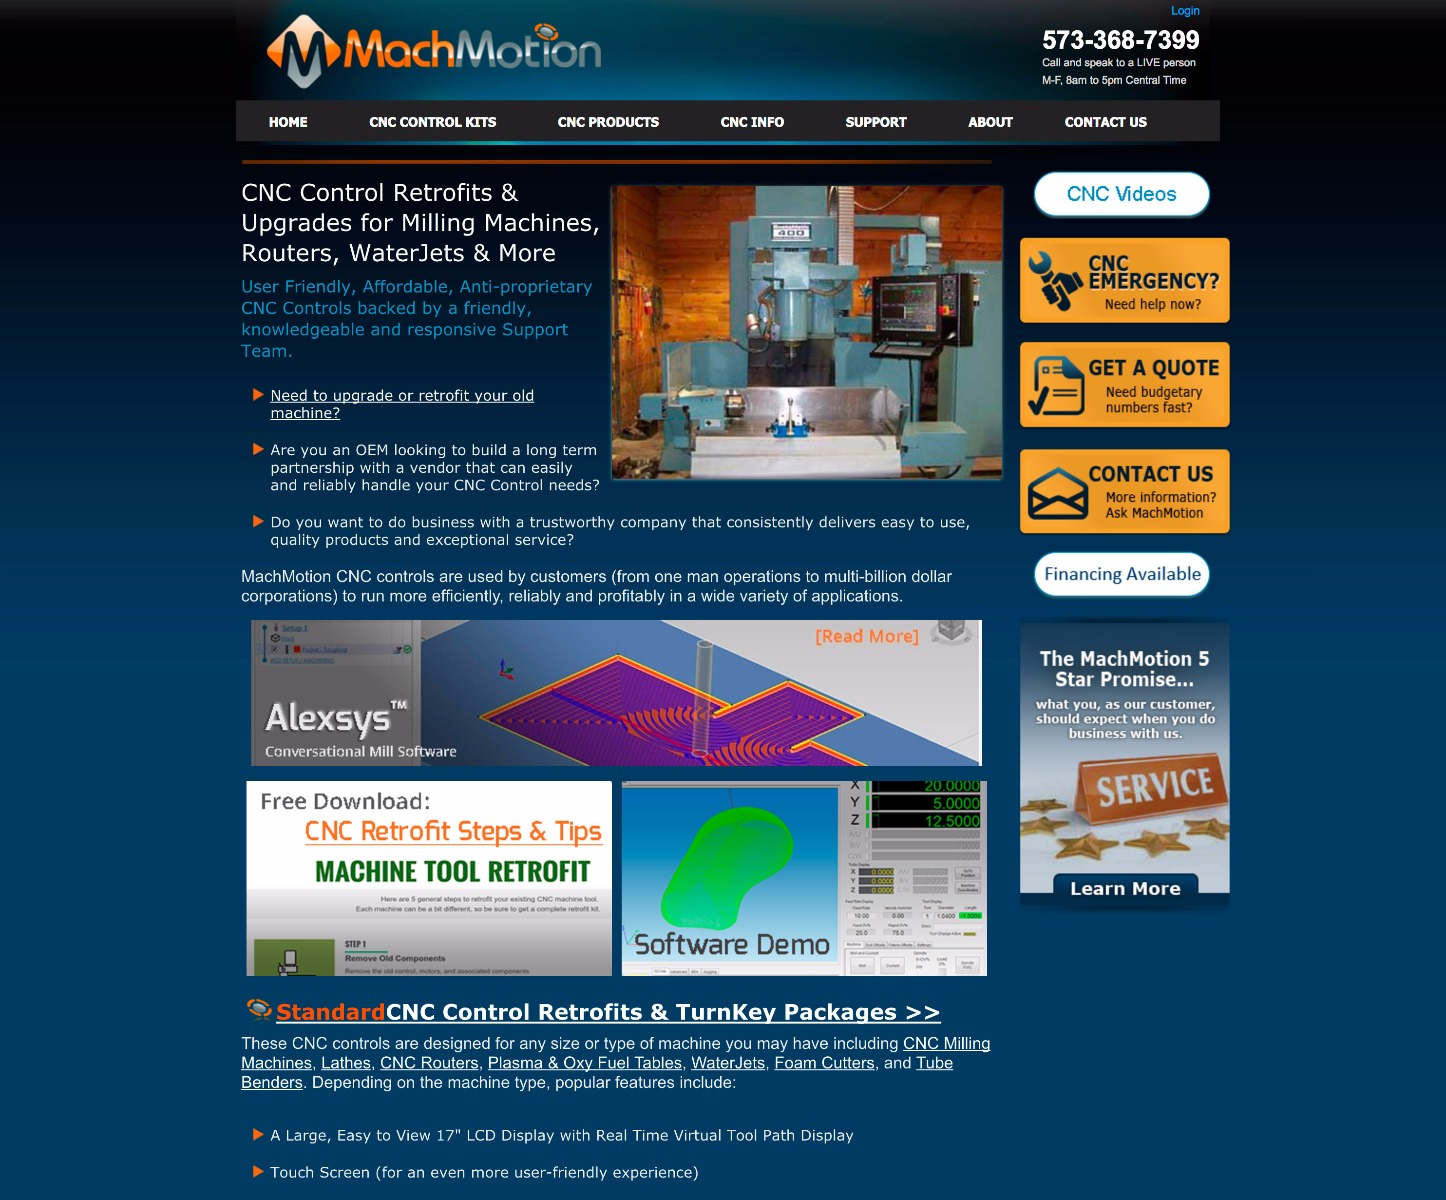 MachMotion.com old website